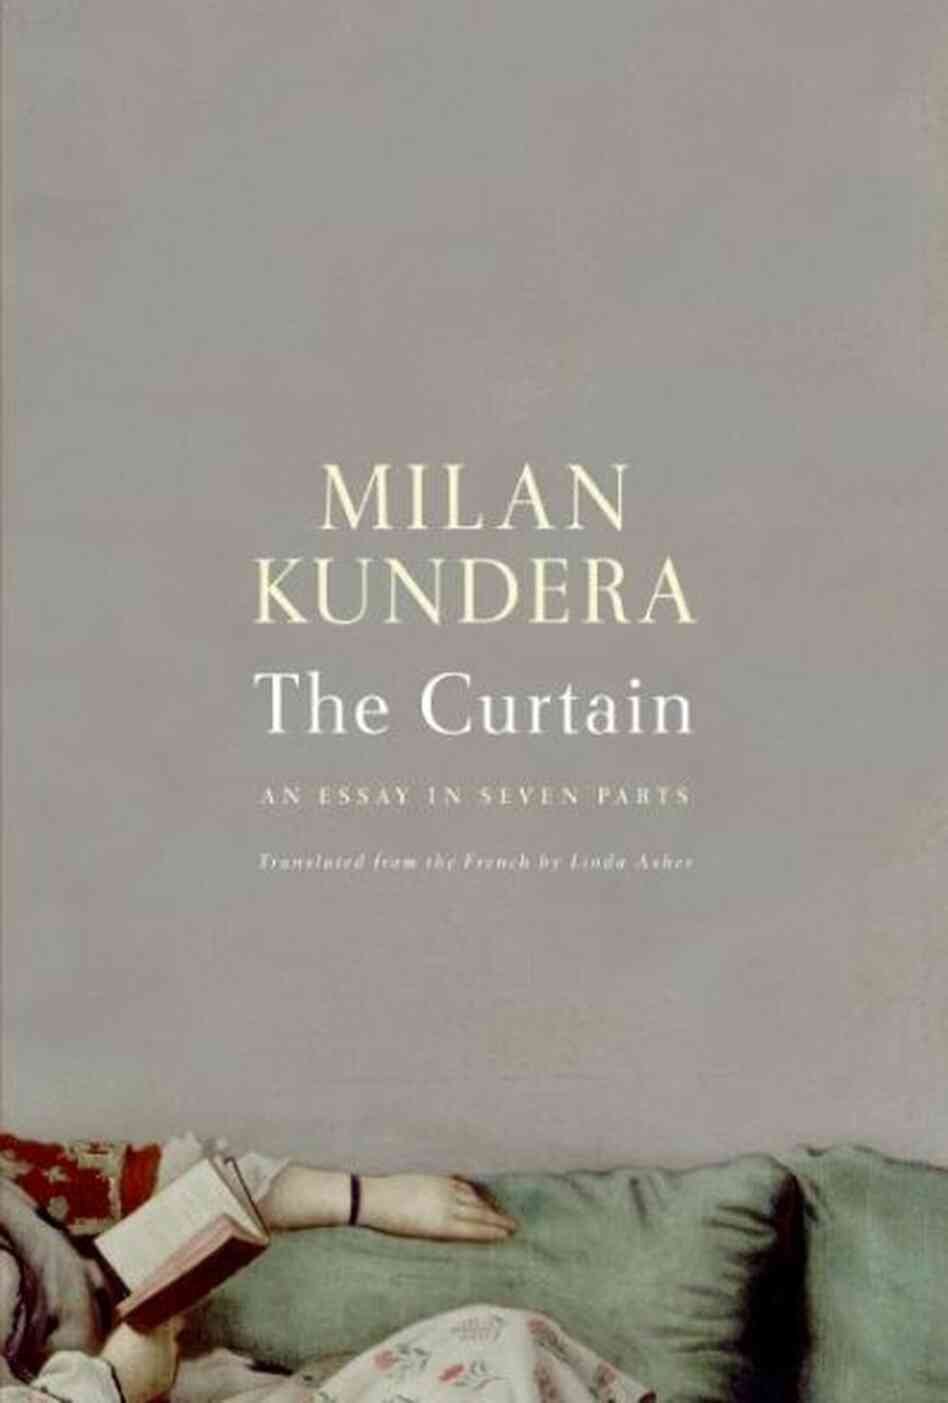 the craft of kundera essay Yates, kundera, and craft zachary martin and it was the boston review that had published stewart o'nan's 1999 essay on yates that resulted in a resurgence of.